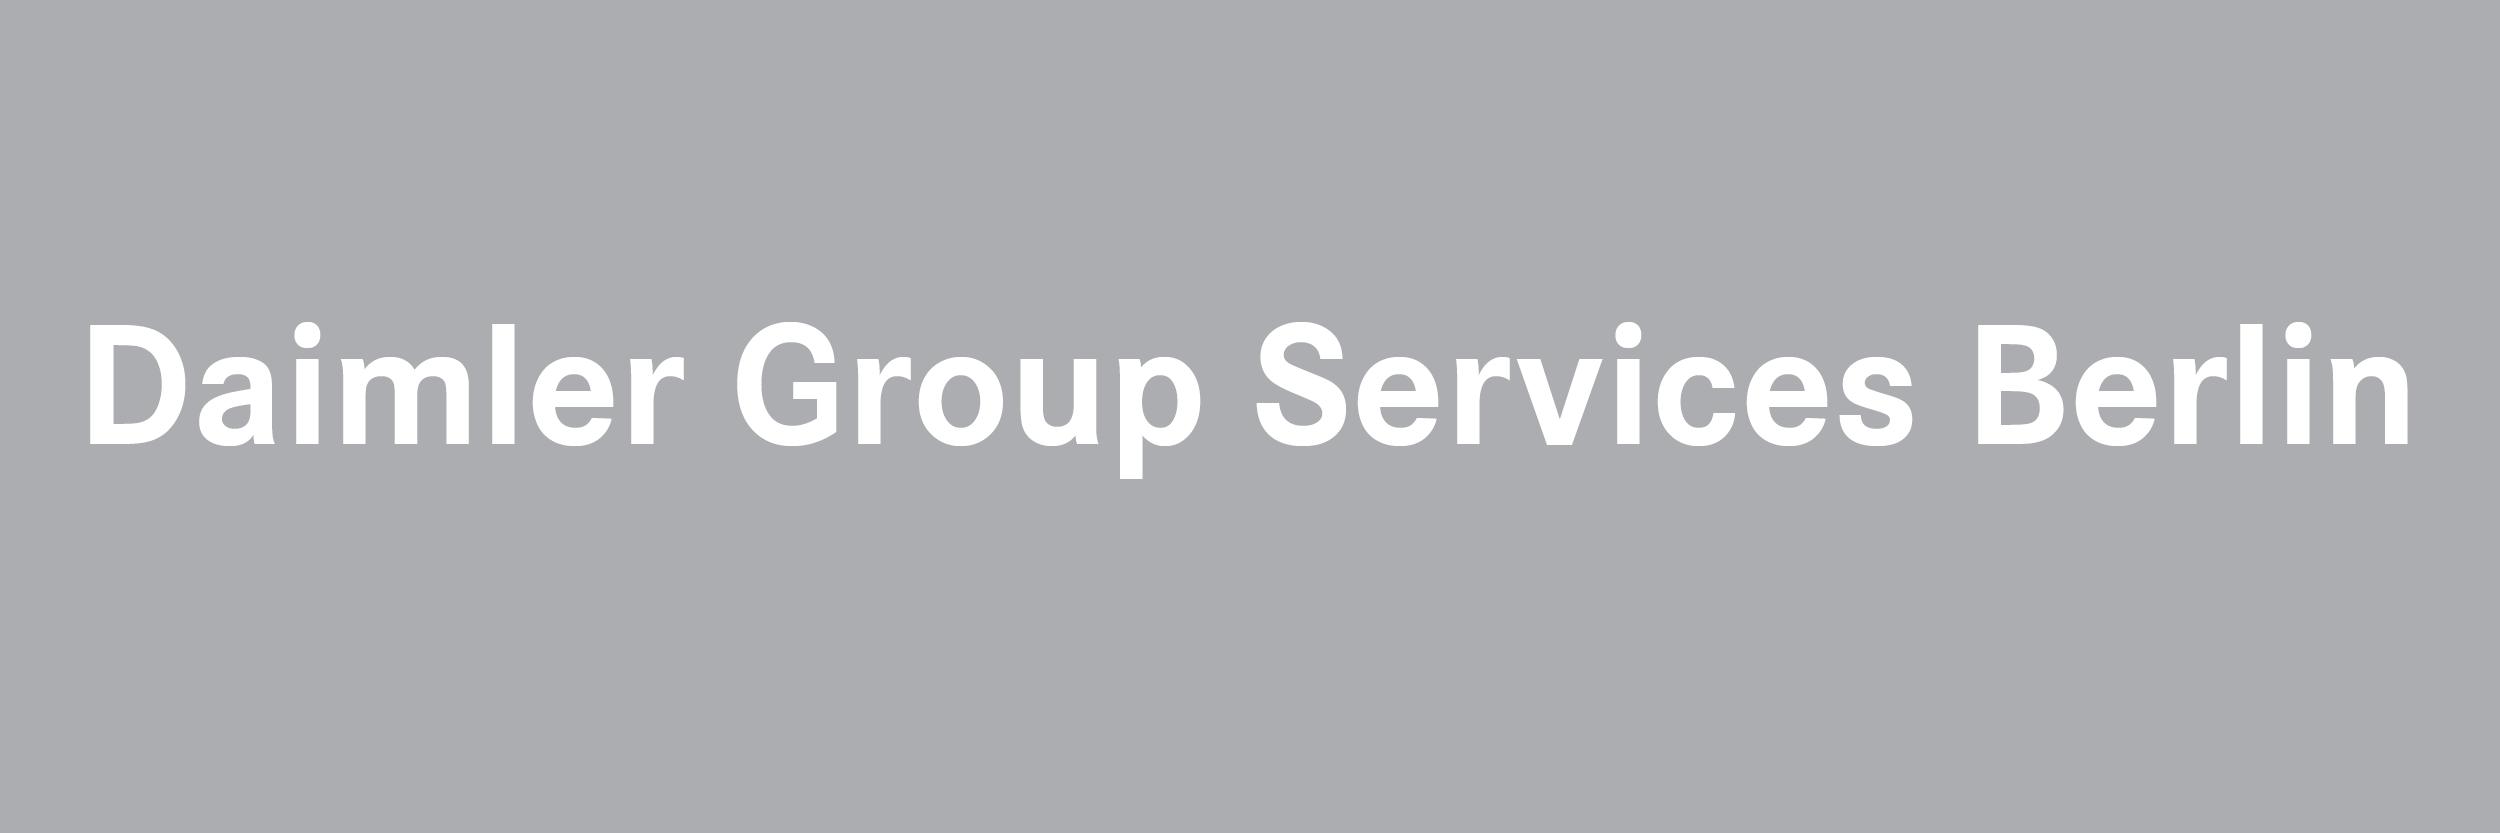 Daimler Group Services Berlin GmbH Logo